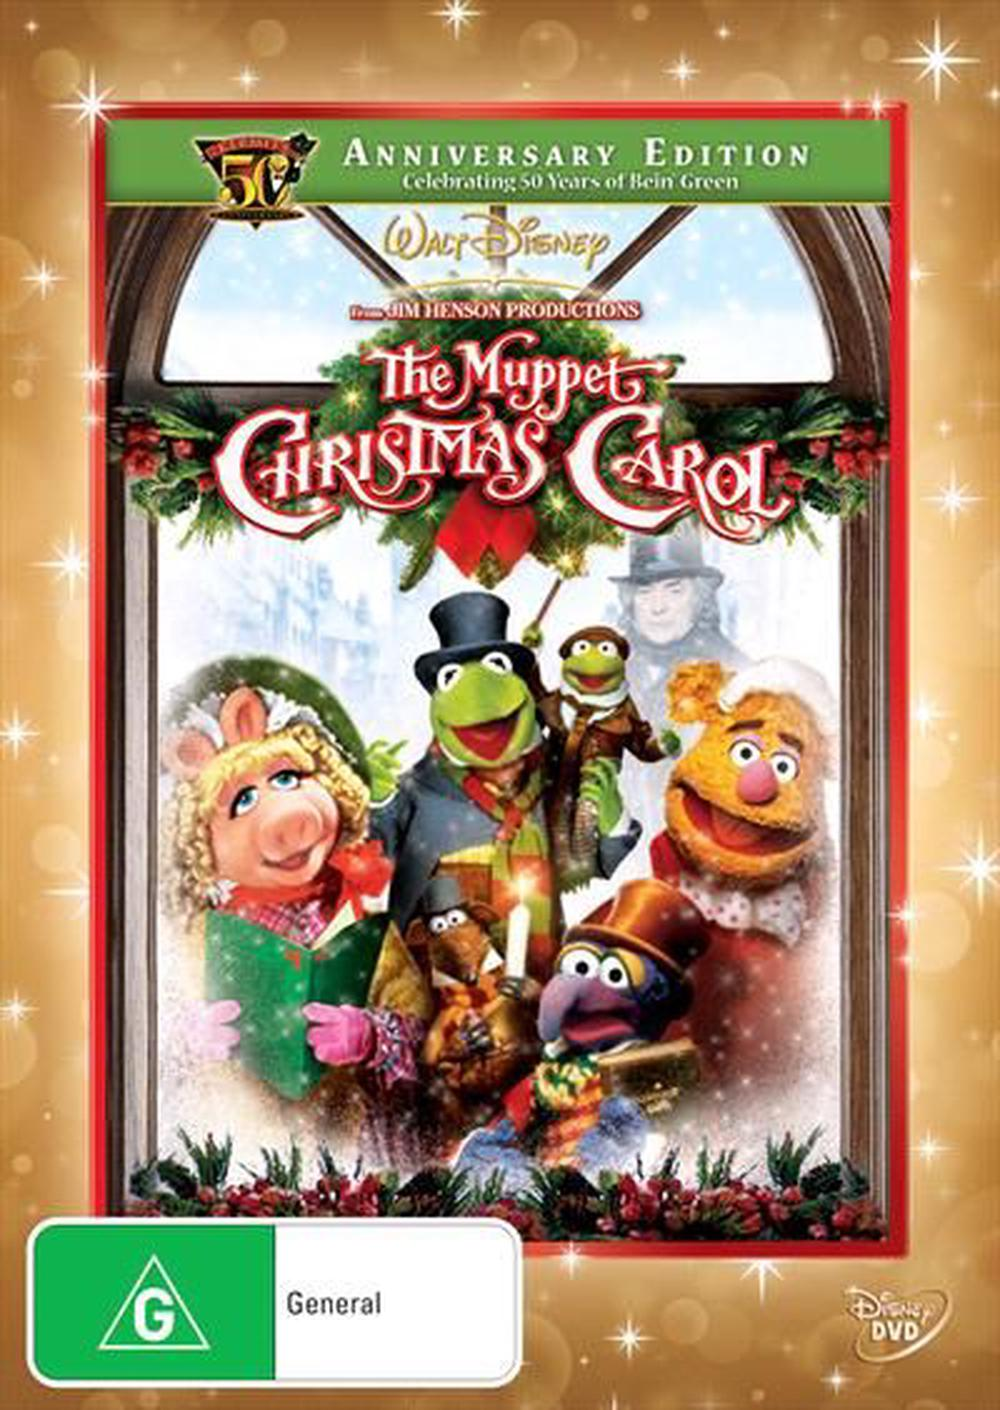 The Muppet Christmas Carol.The Muppet Christmas Carol 50th Anniversary Edition